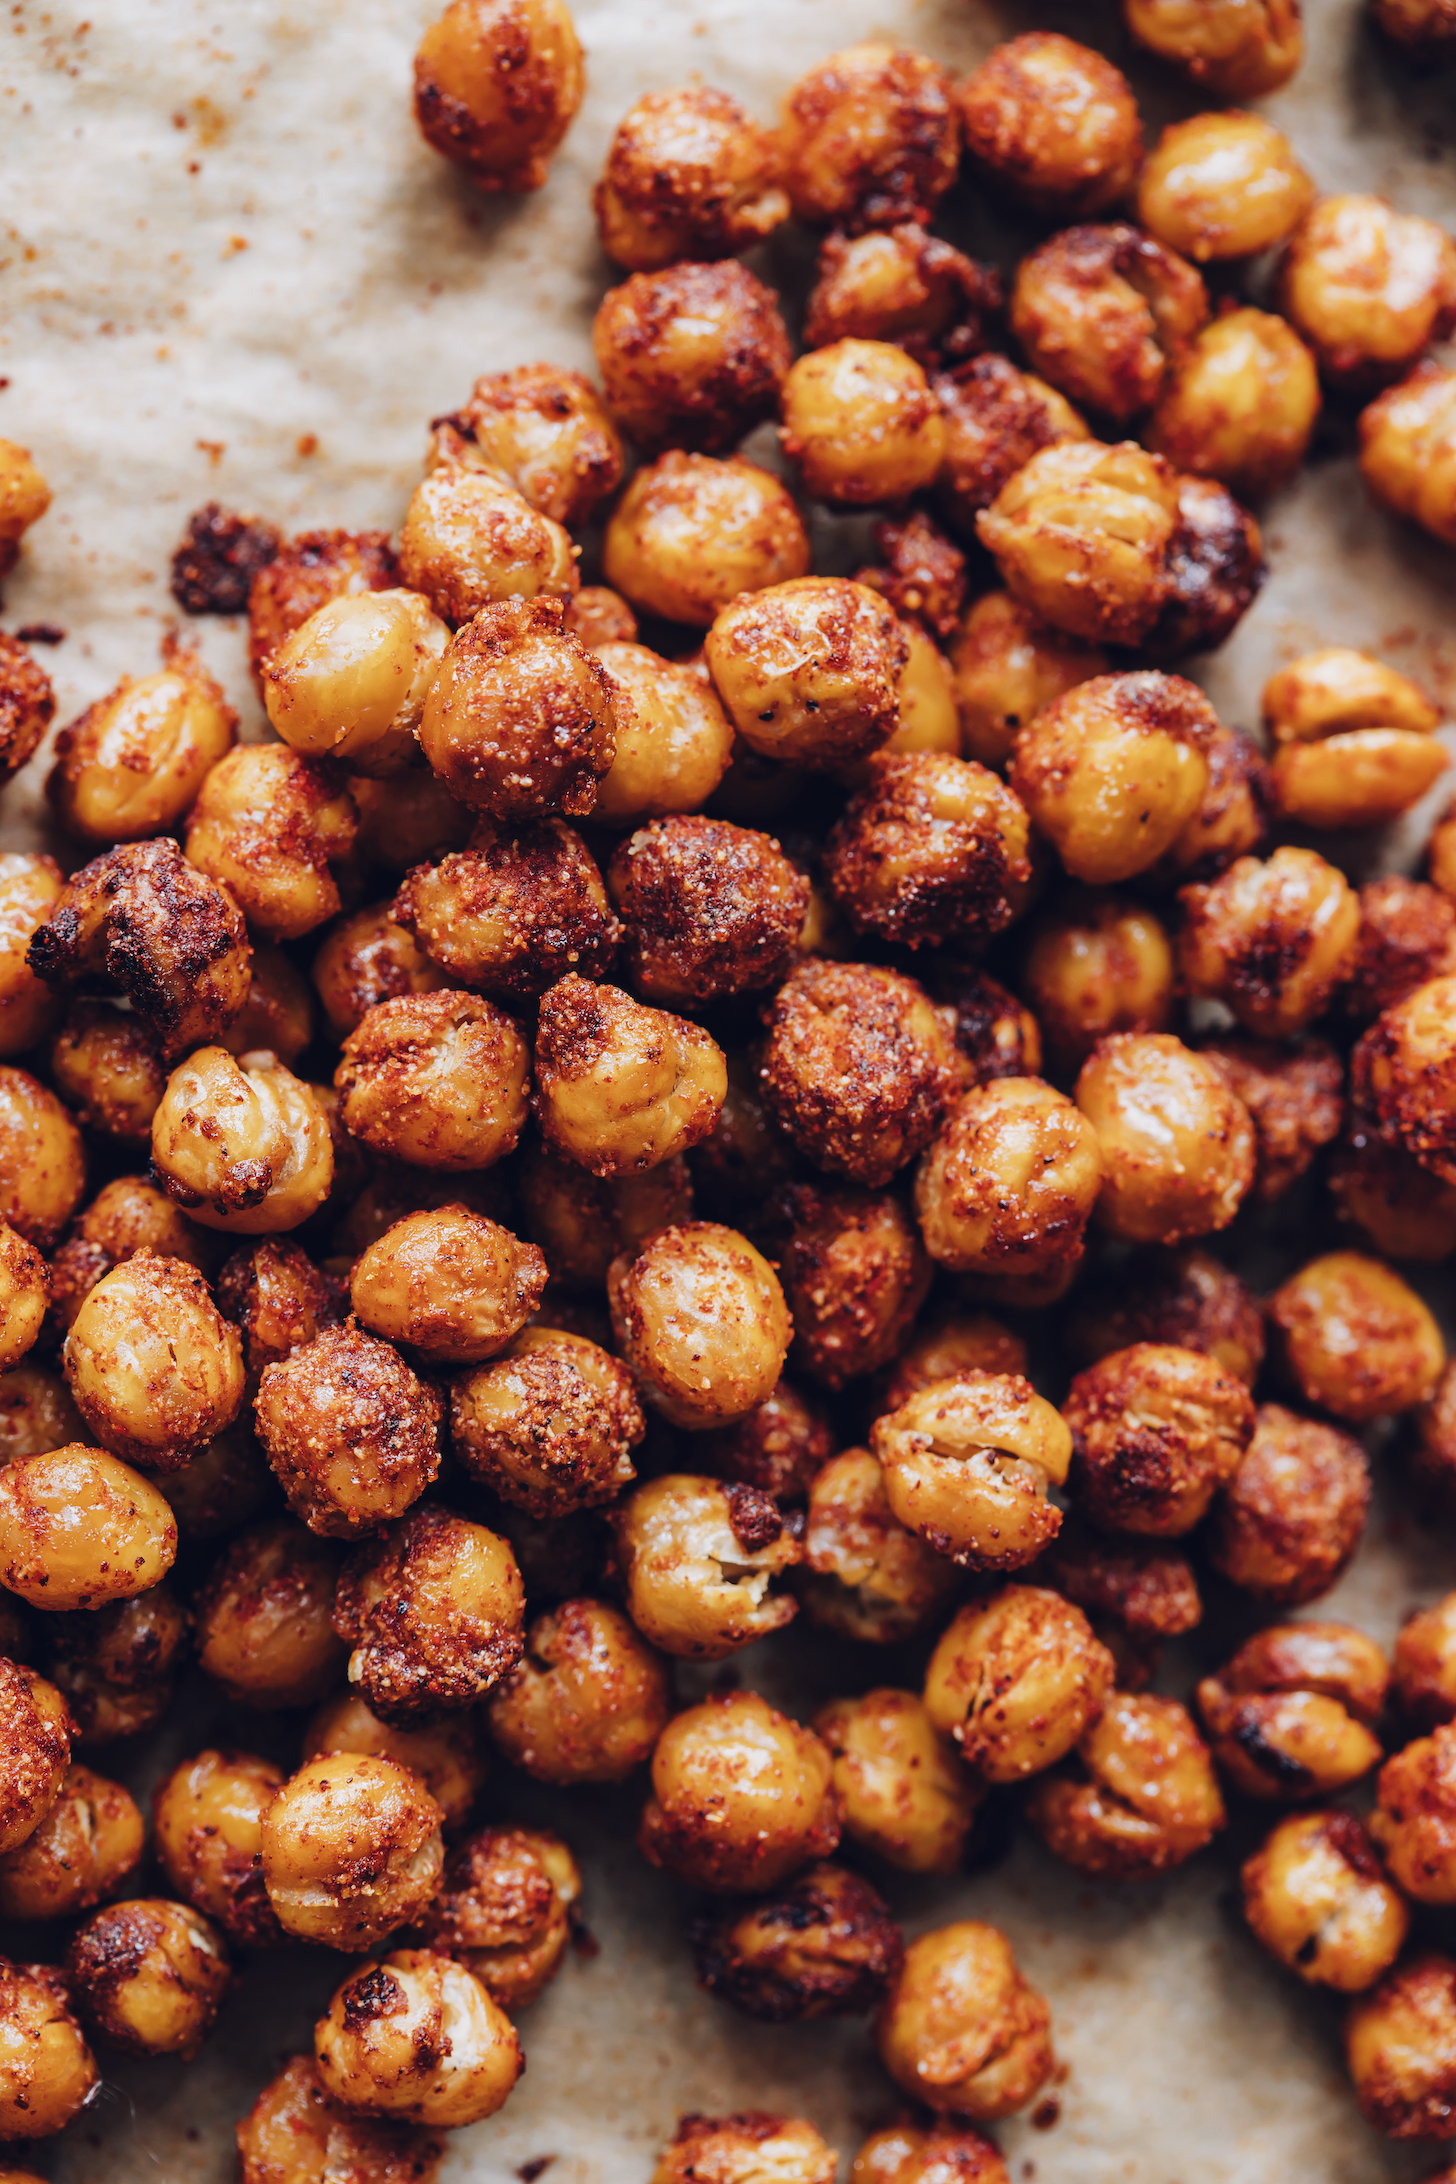 BBQ roasted chickpeas on a parchment-lined baking sheet